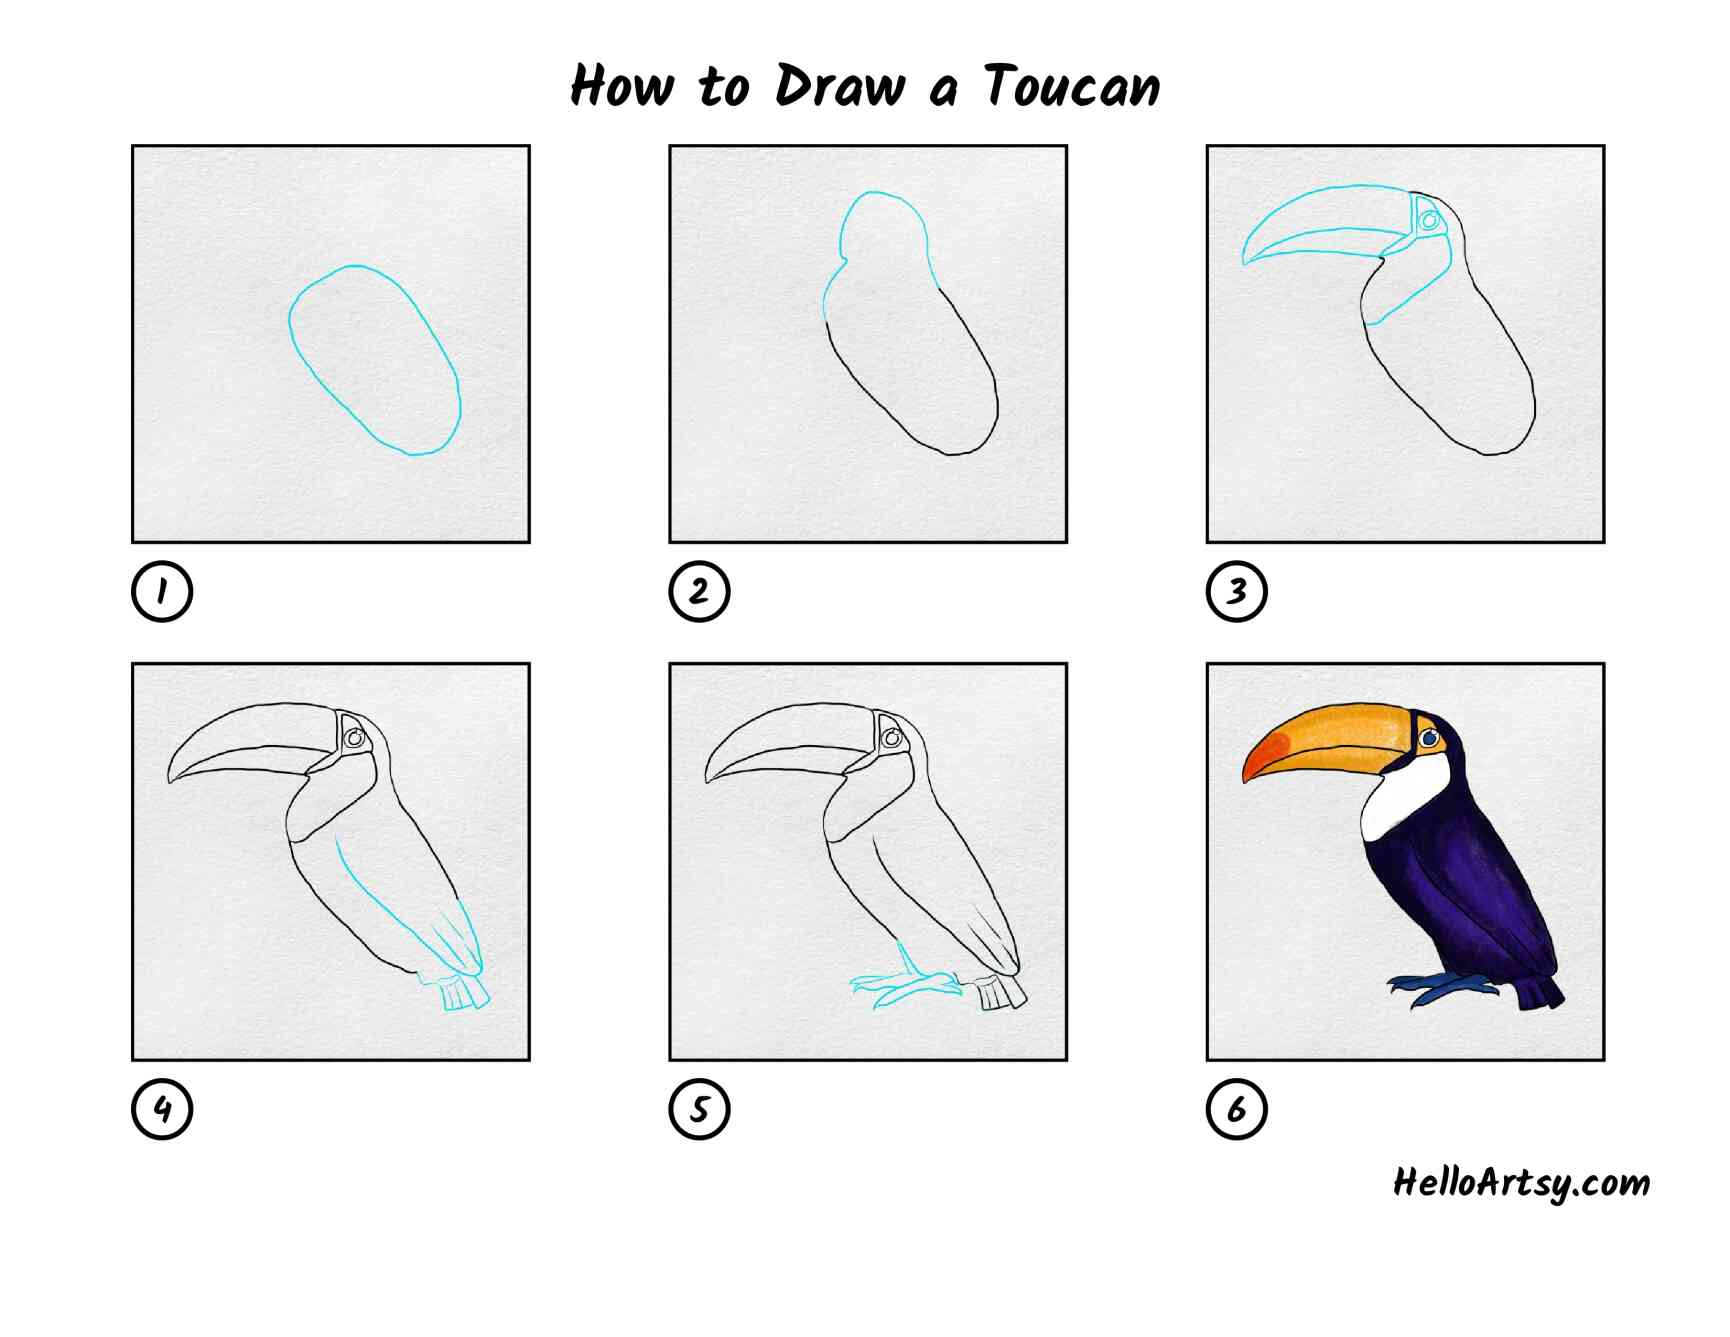 How To Draw A Toucan: All Steps